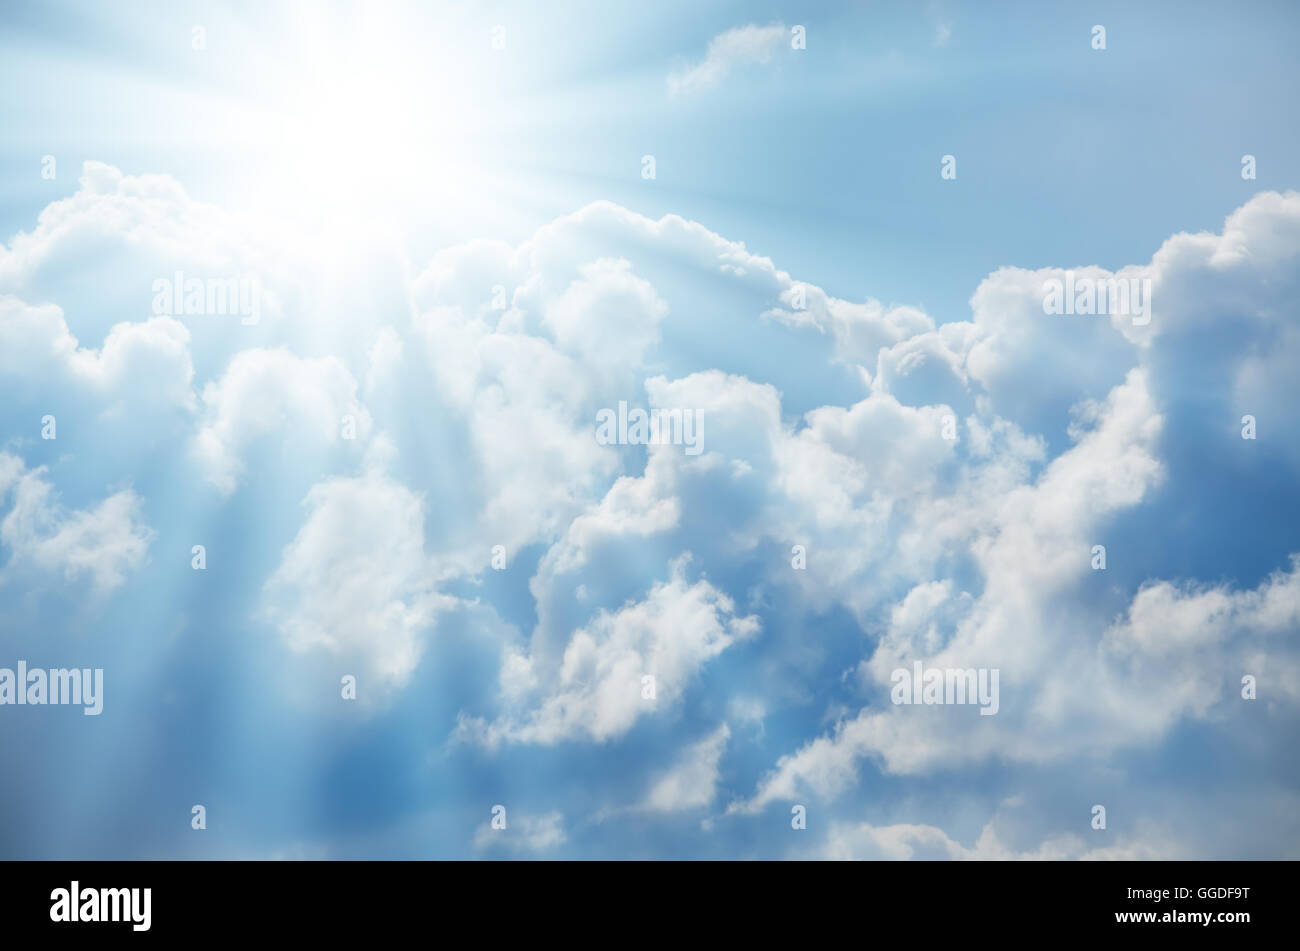 Bright sun shines among the white clouds - Stock Image